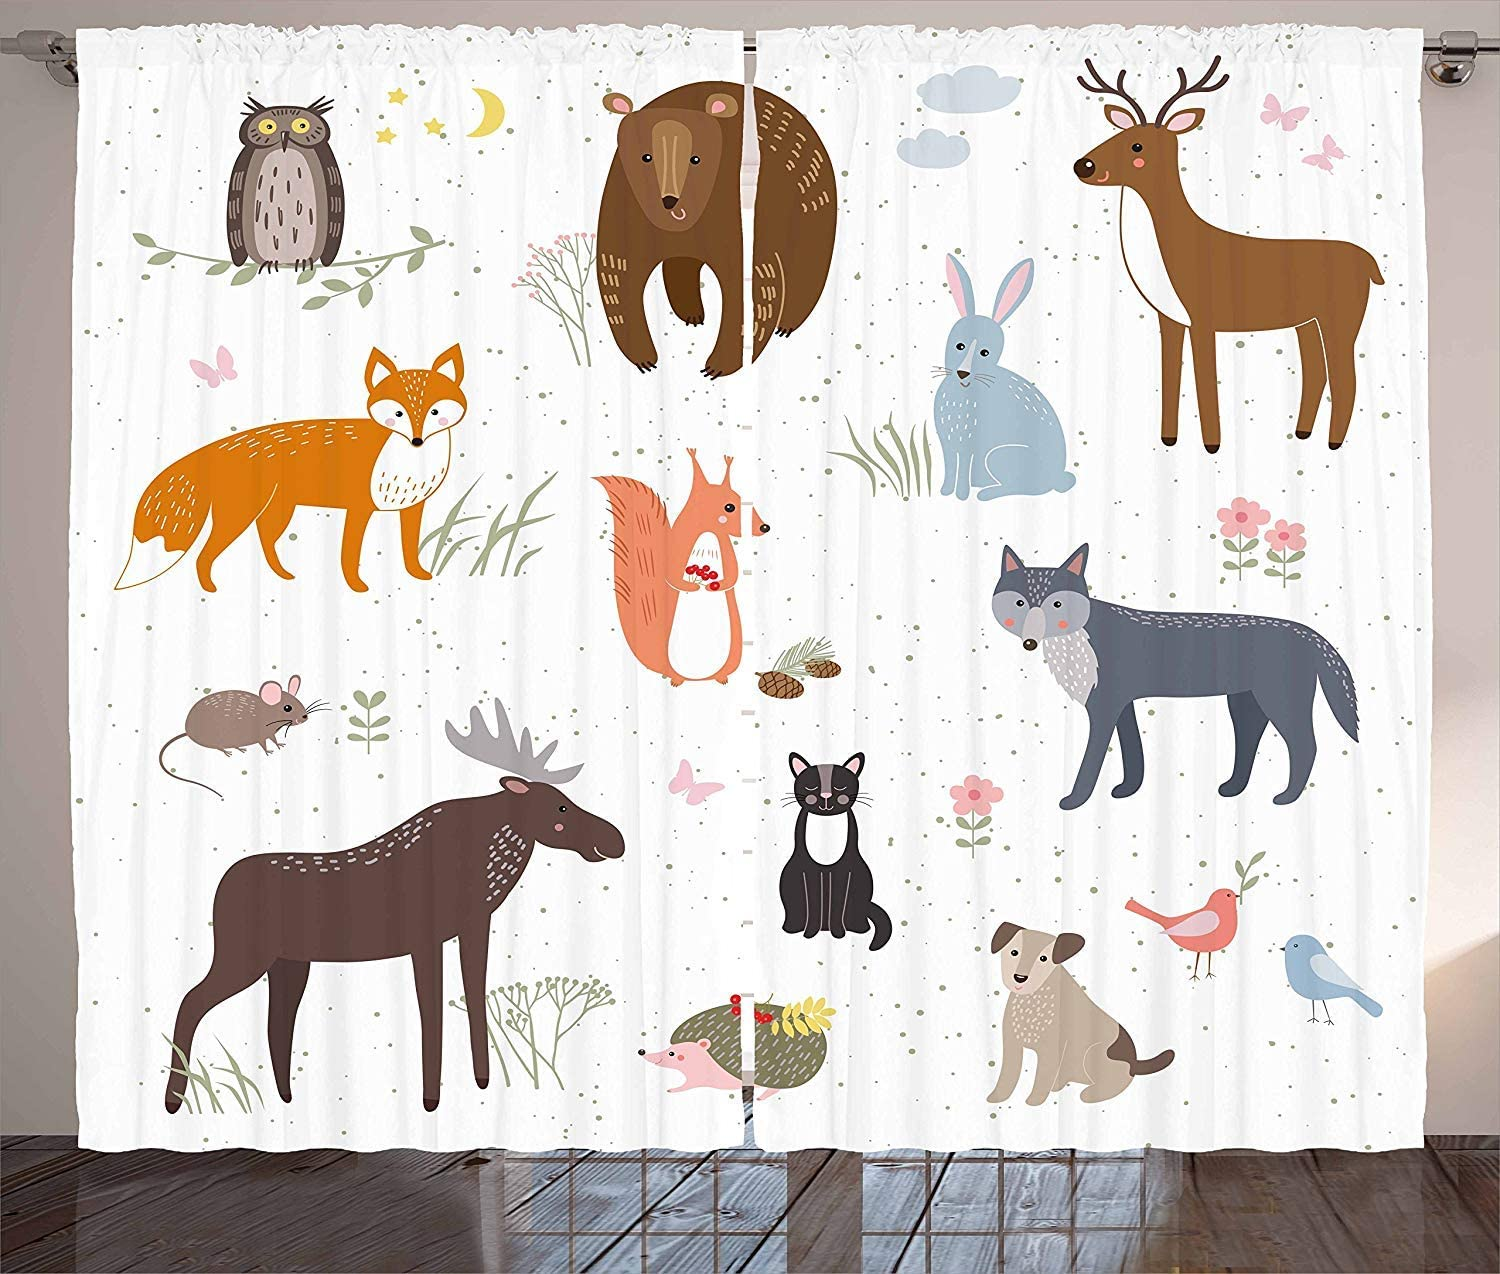 FAFANIQ Cabin Curtains Living Room Bedroom Window Drapes 2 Panel Set Animals in The Springtime Meadow Childish Woodland Fauna Kids Baby Room Nursery Brown White,57 * 47 inch